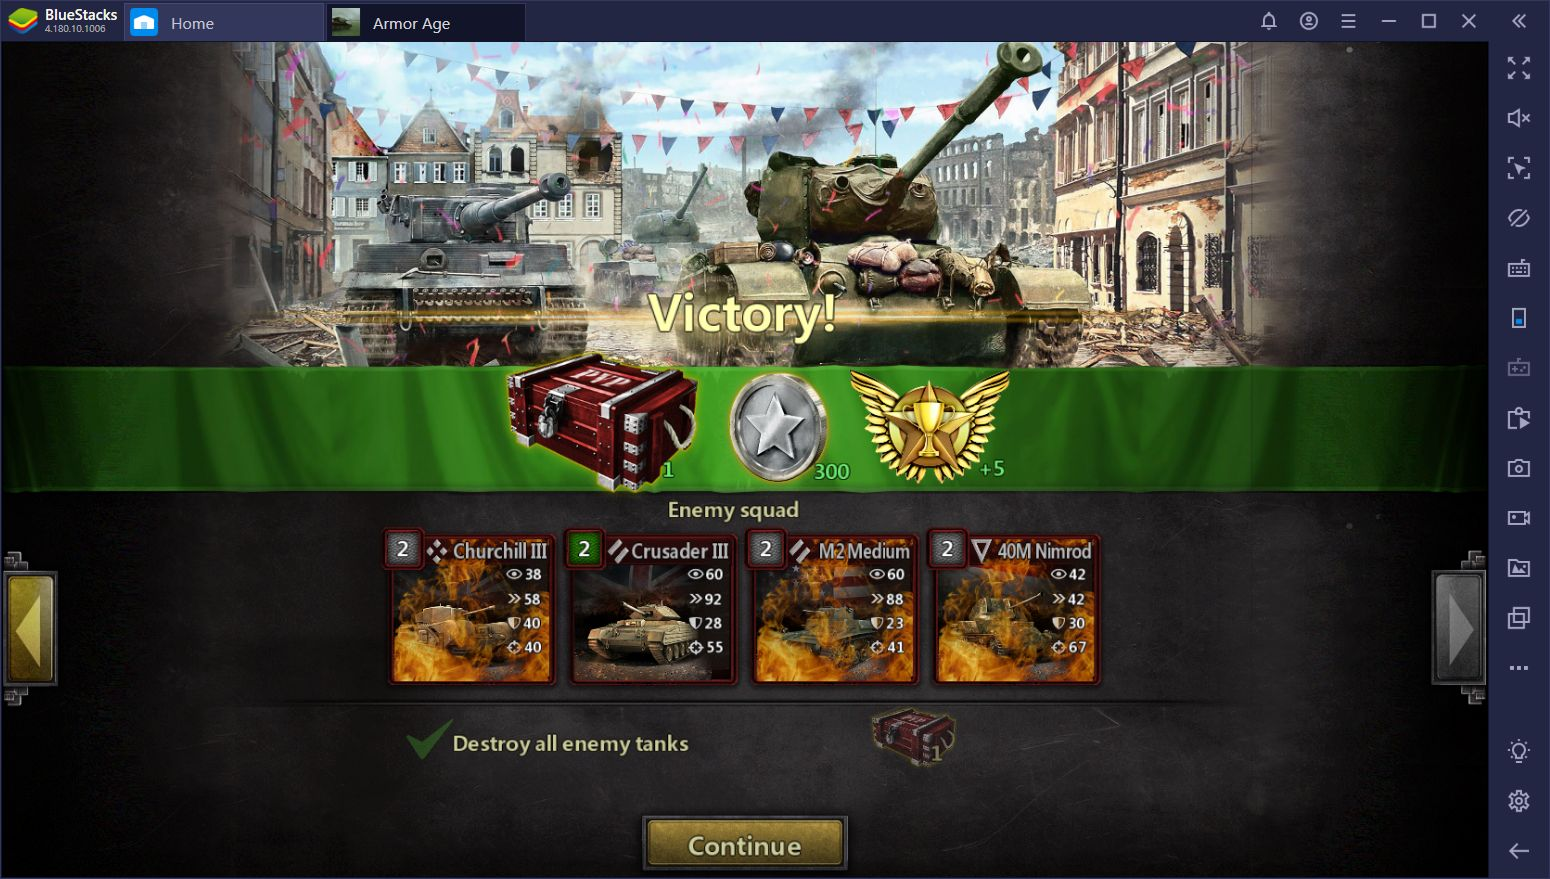 Armor Age: Tank Wars on PC - The Best Tips and Tricks to Get You Started